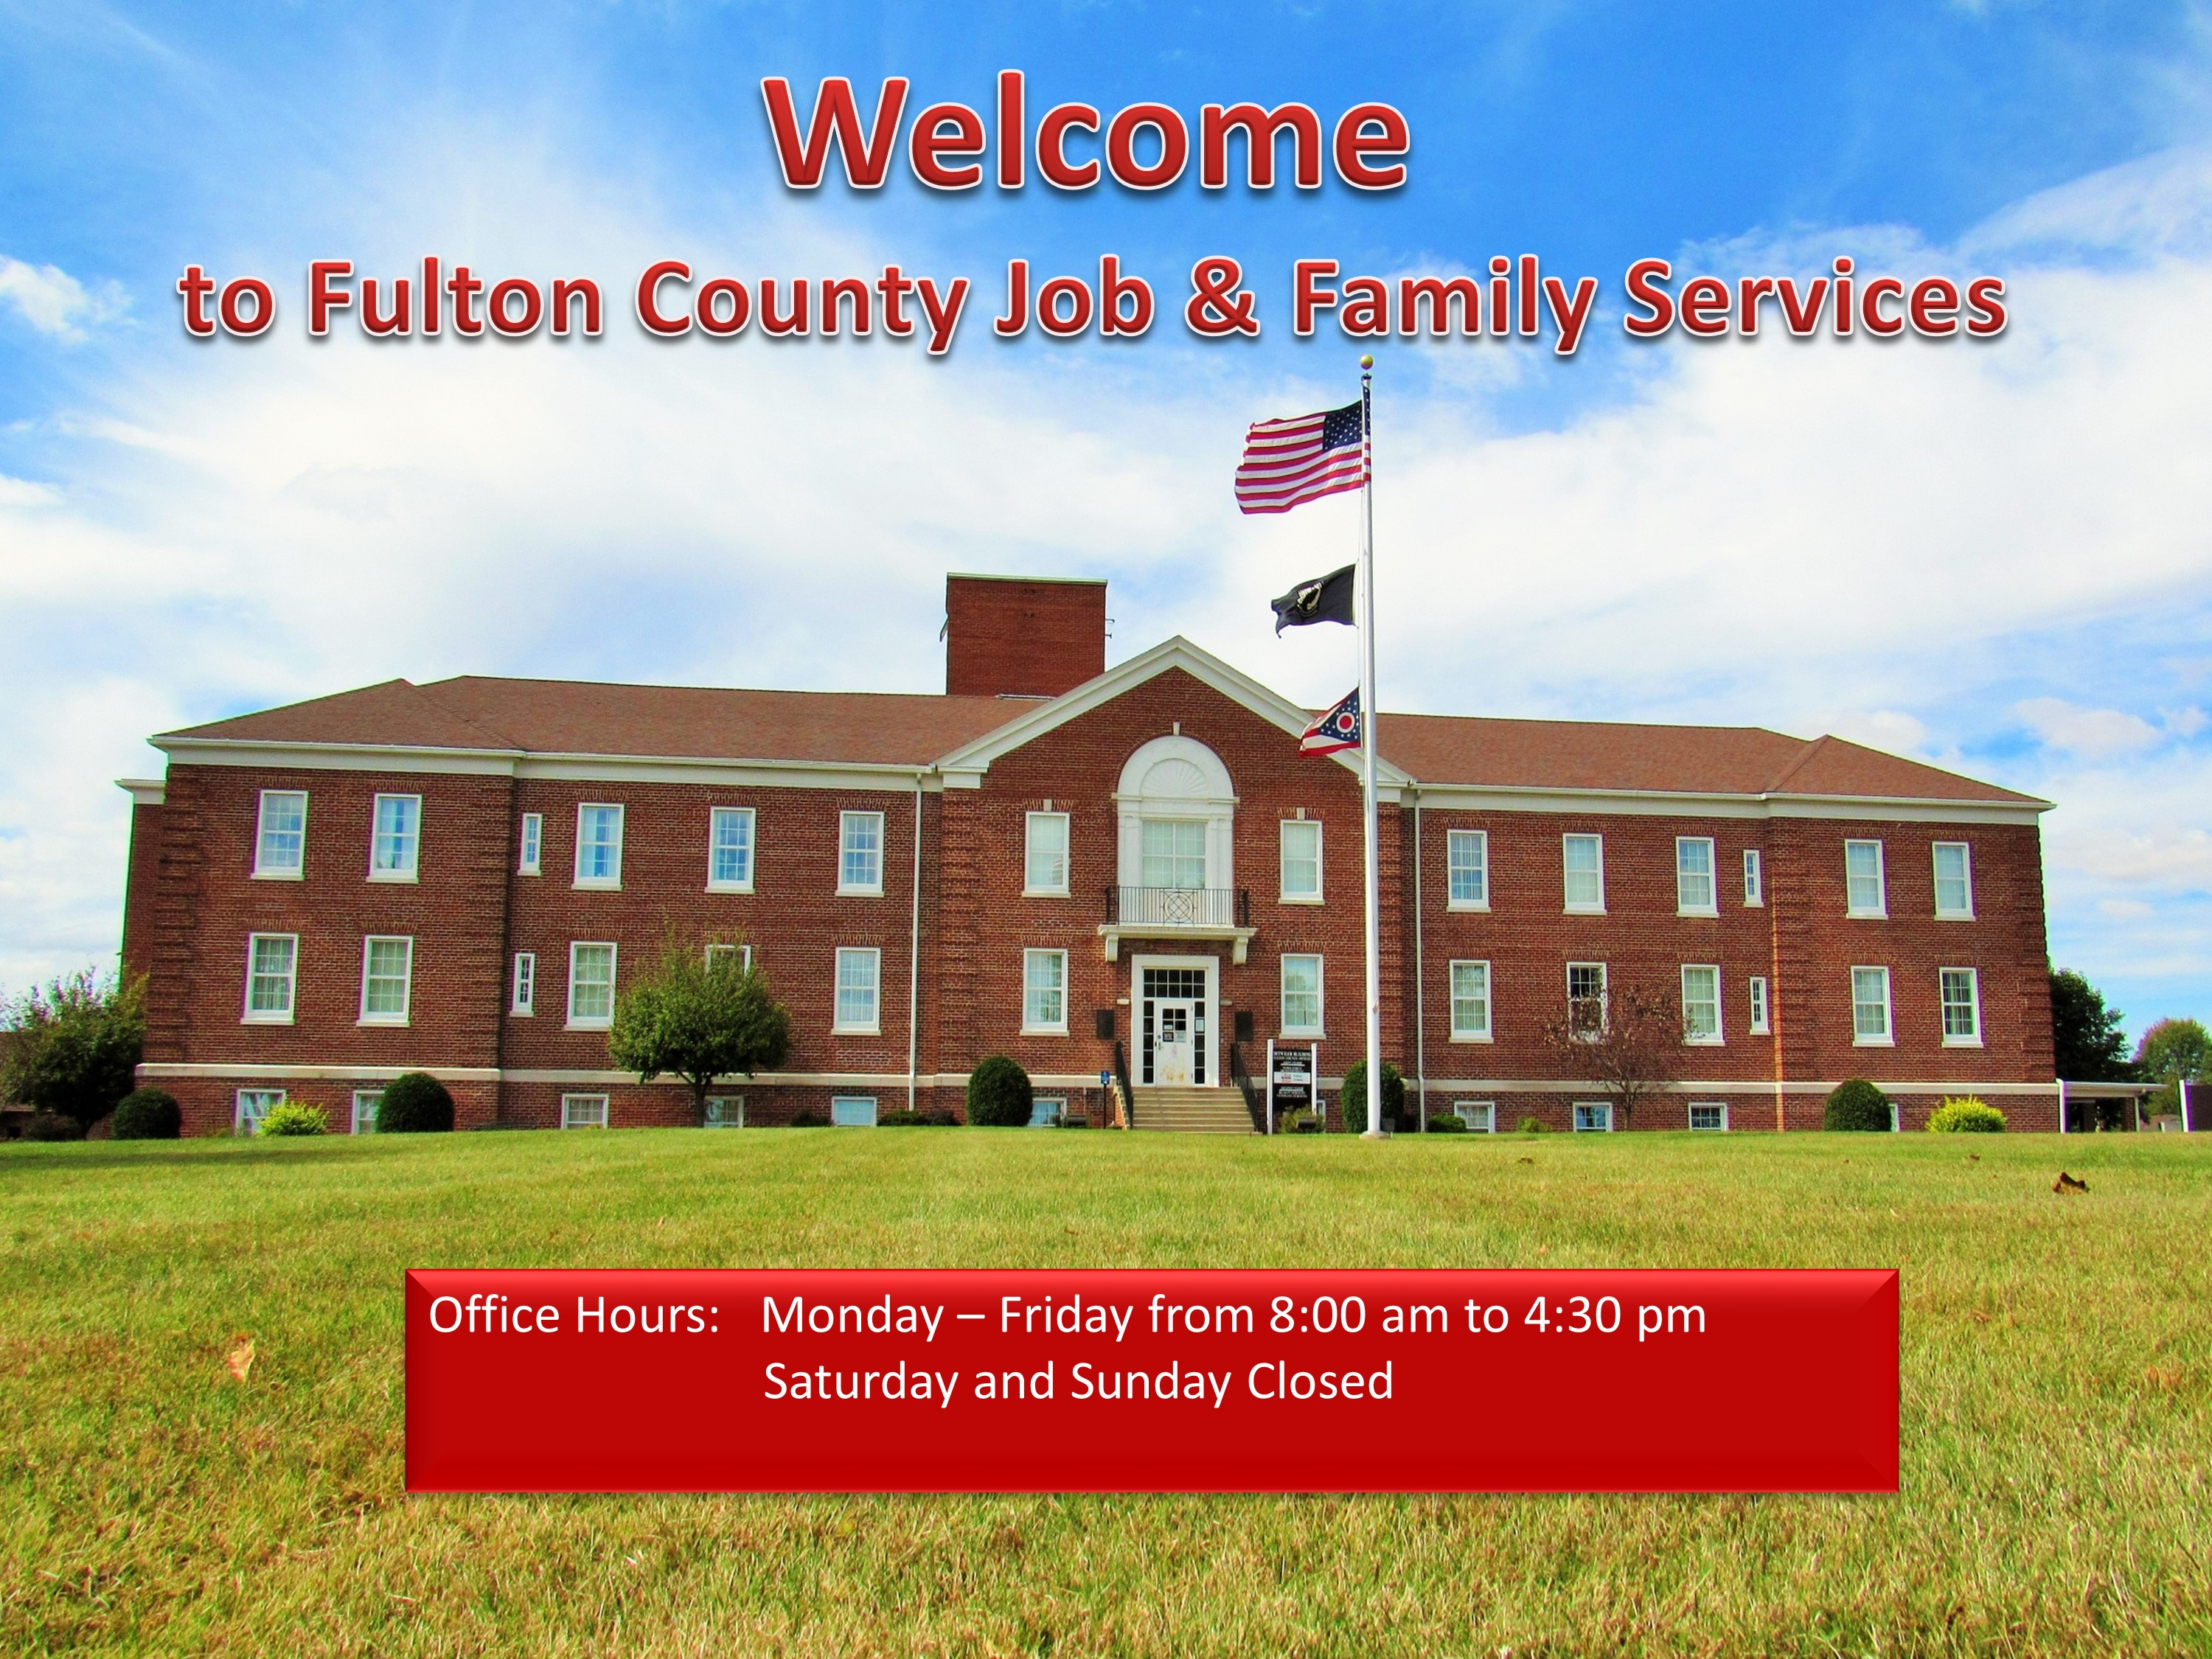 Welcome To Fulton County Job And Family Services